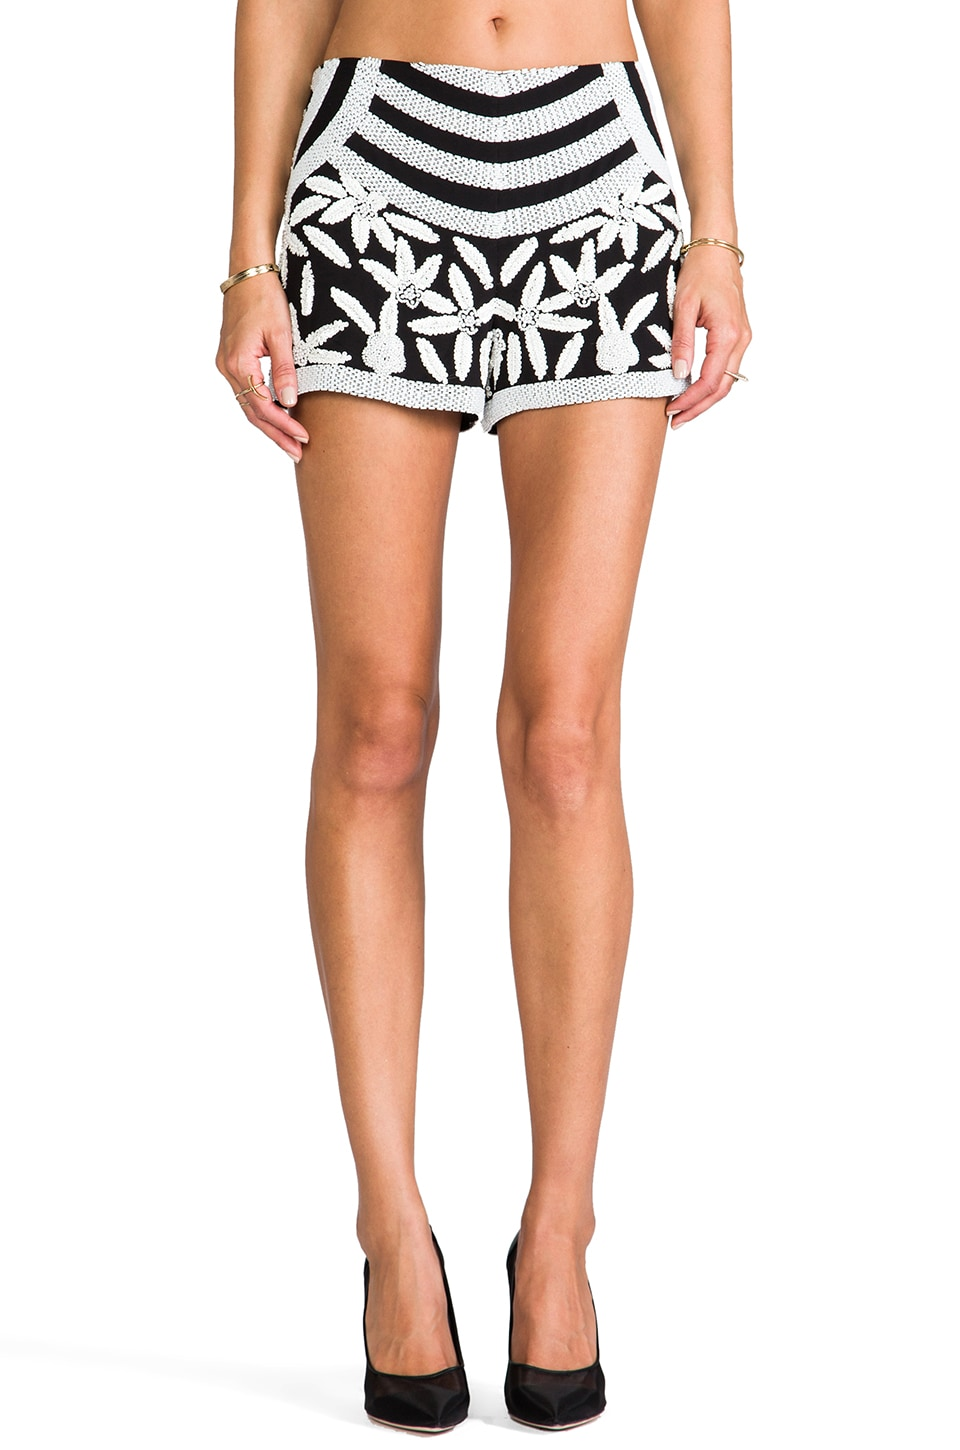 Parker Veda Beaded Shorts in Black/White